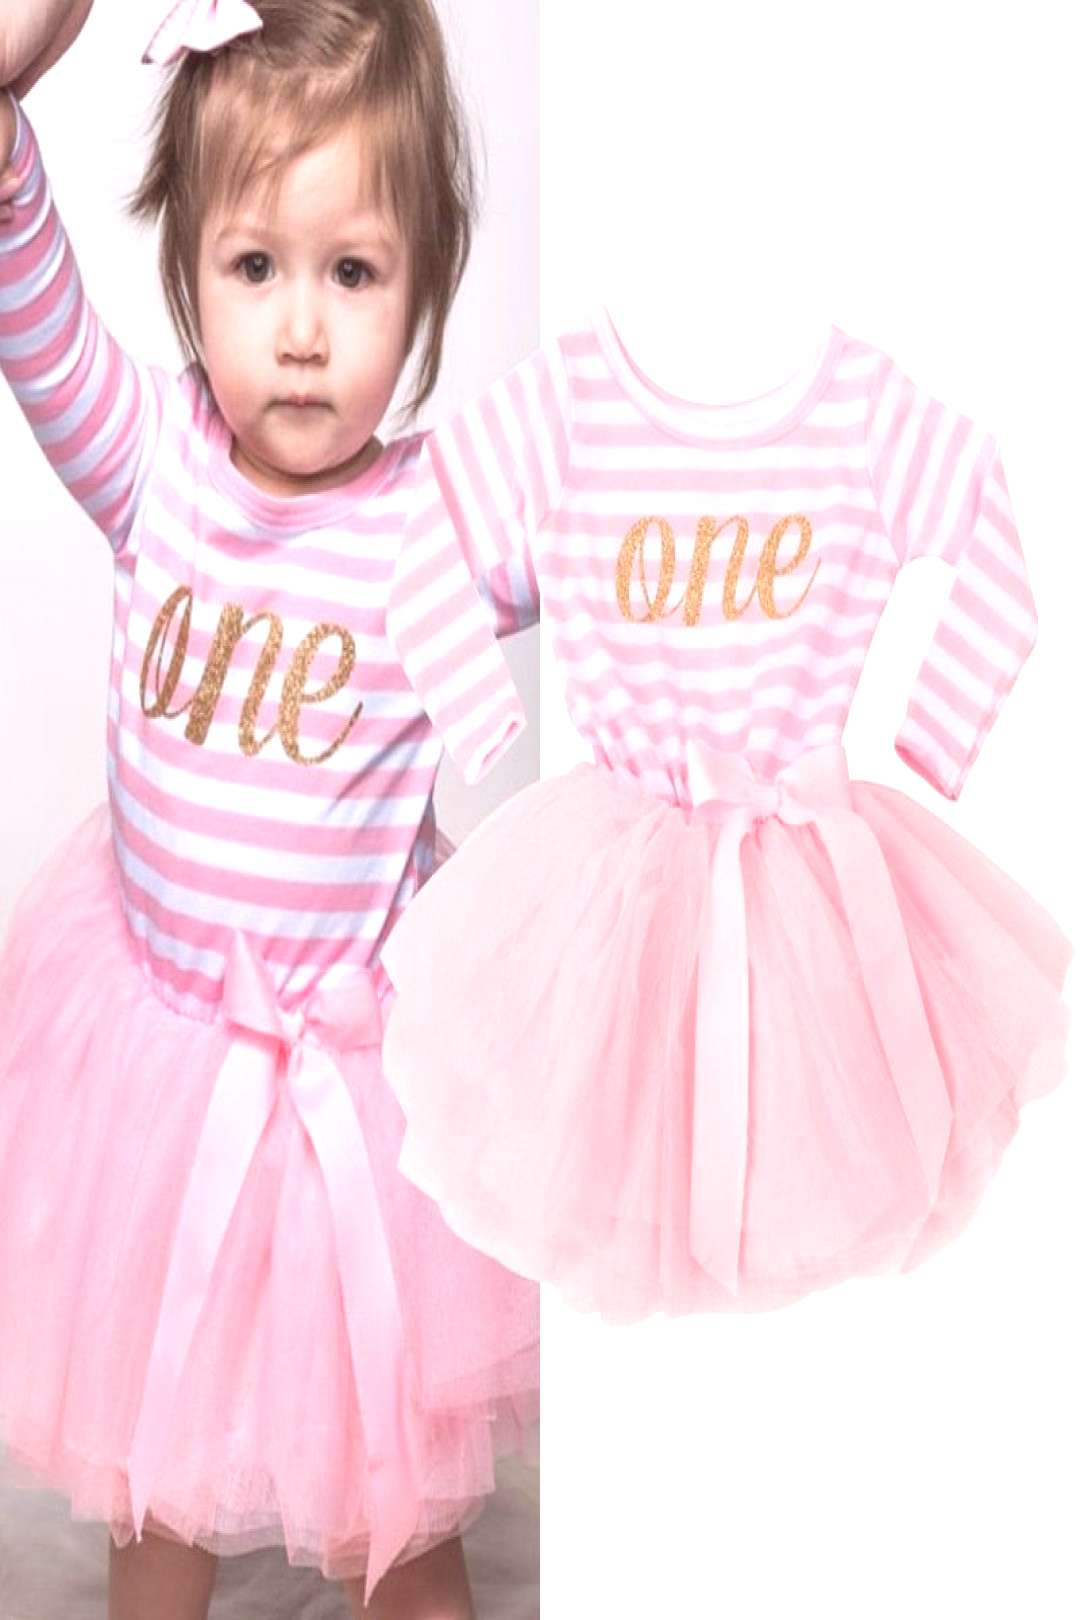 Winter Baby Girl Baptism Dress Clothes For Newborn Infant 1 2 3 Year Birthday Party Dress Gift Long